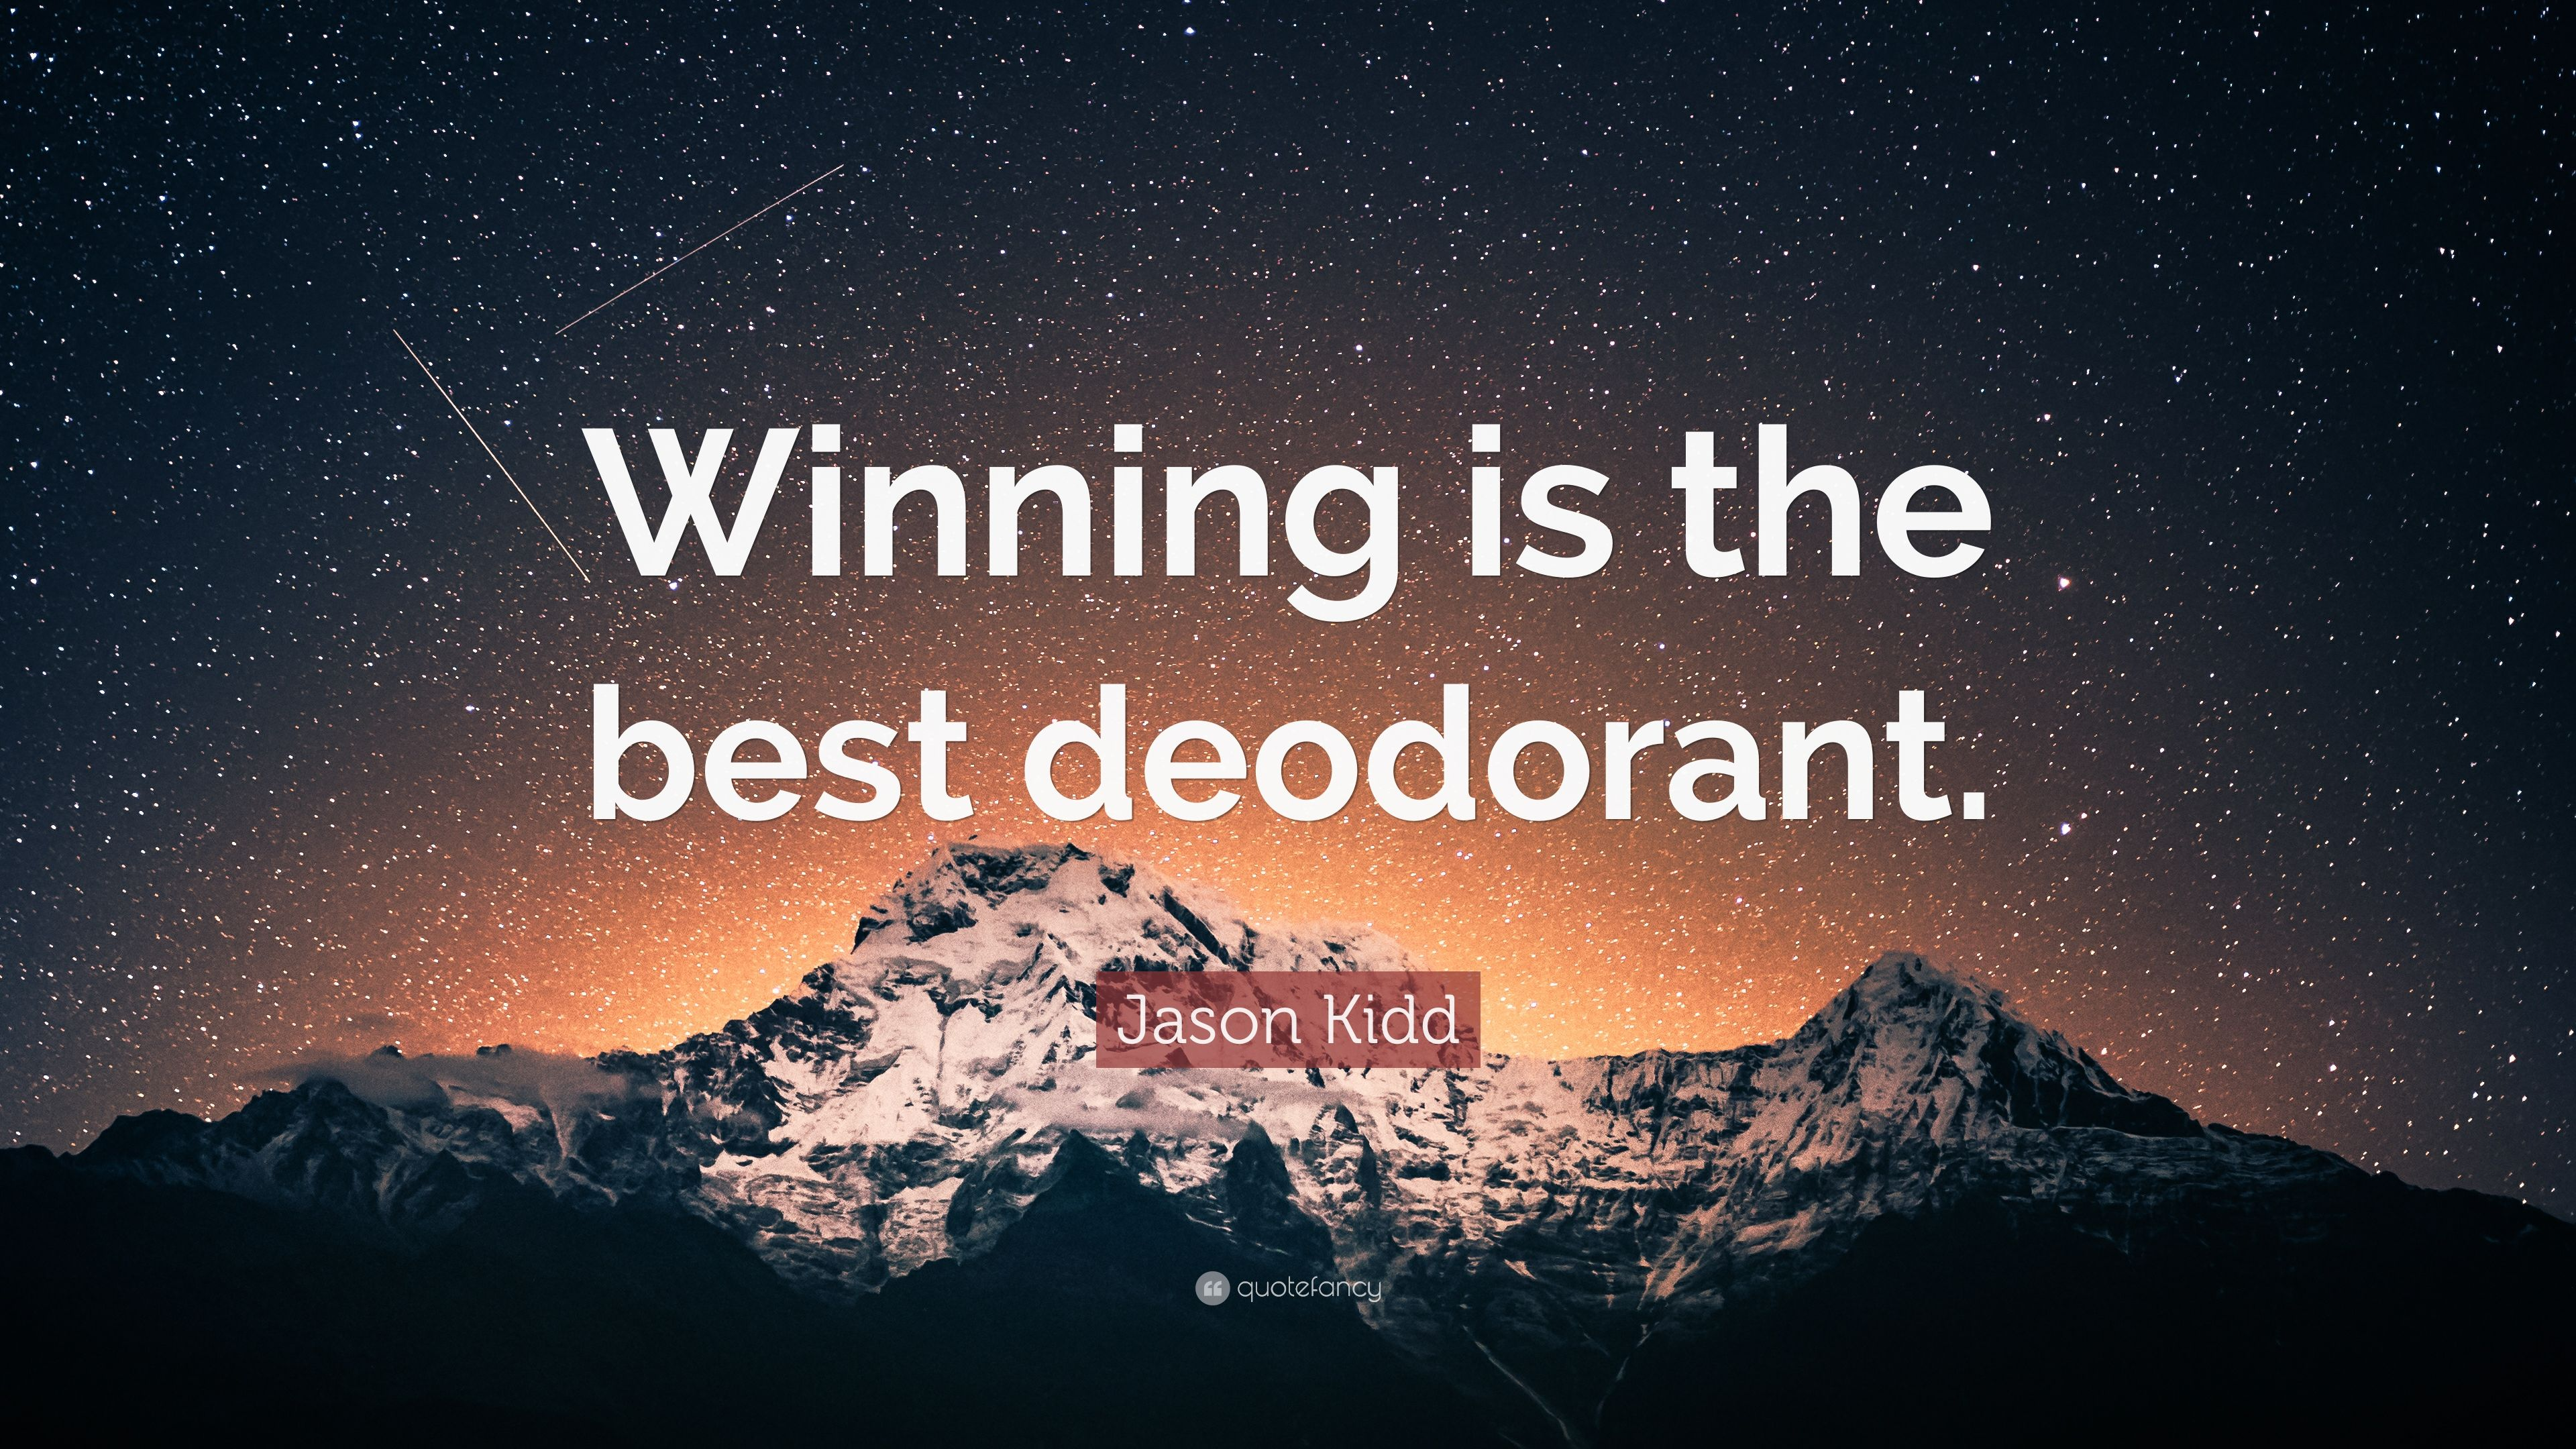 Jason kidd quote winning is the best deodorant 7 wallpapers jason kidd quote winning is the best deodorant voltagebd Image collections